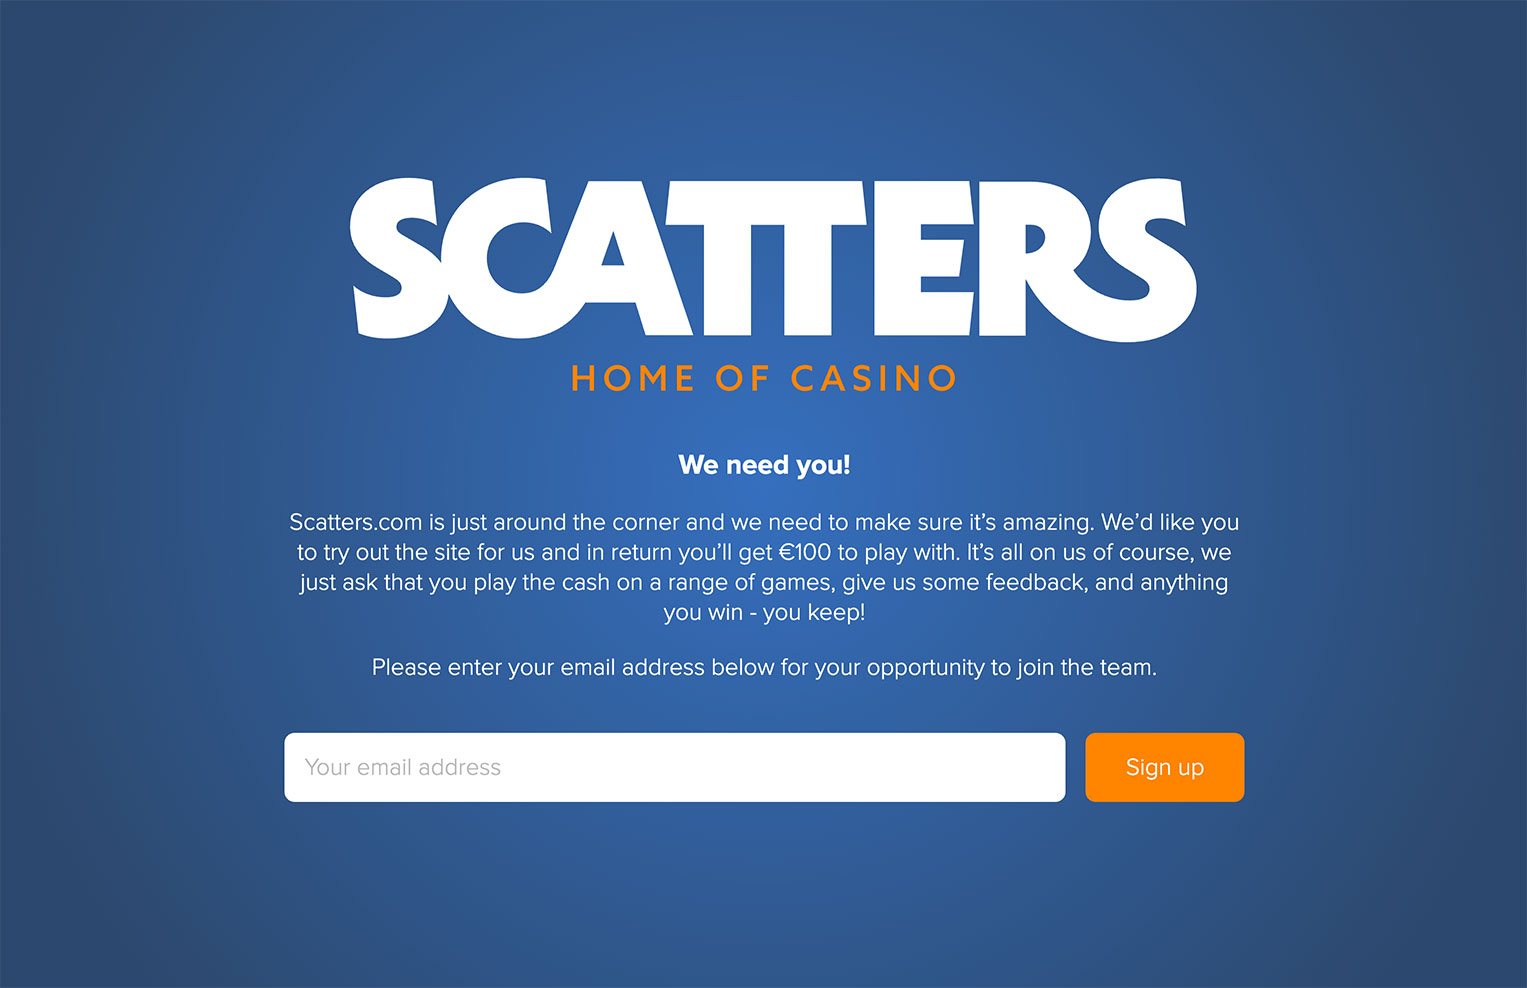 Scatters casino needs you